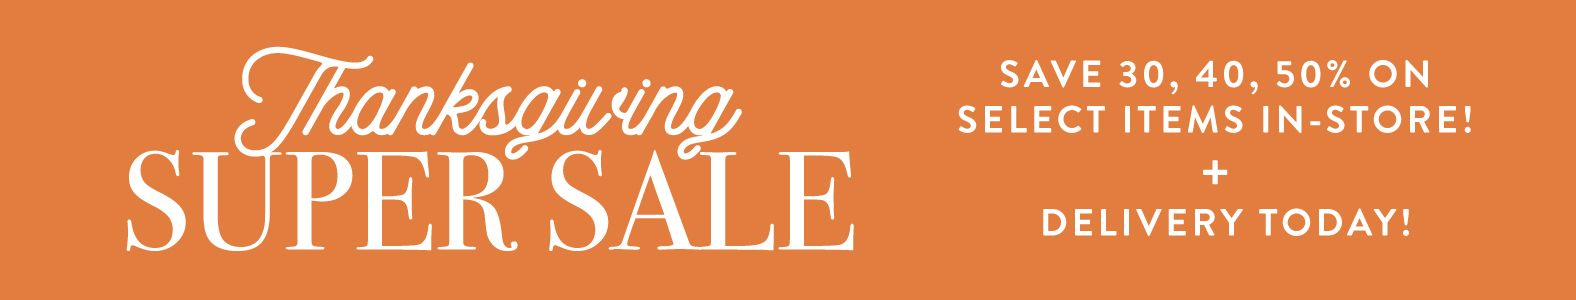 Thanksgiving Super Sale Banner